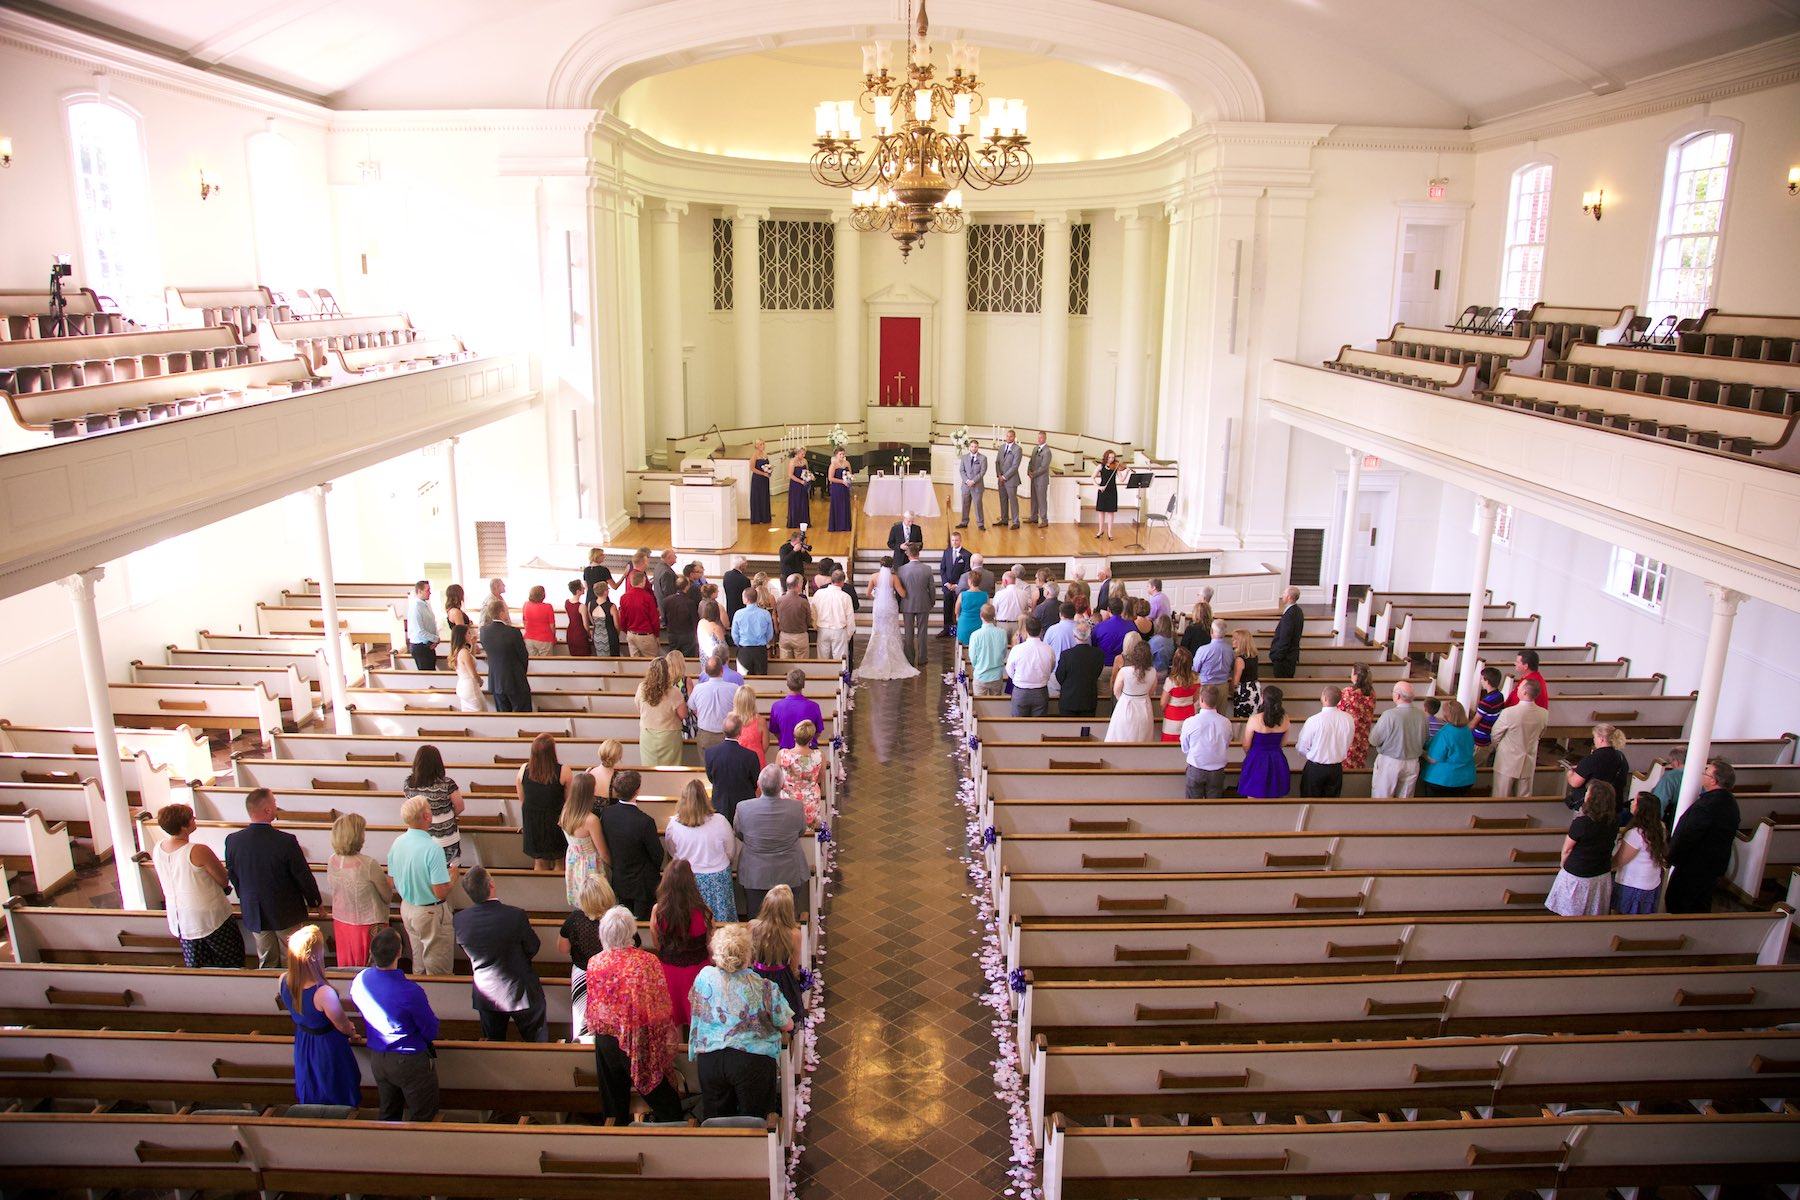 Overall photo shows those in attendance and decorations at Annie Merner Chapel, MacMurray College, Jacksonville, Illinois. Wedding photography by Steve & Tiffany Warmowski.